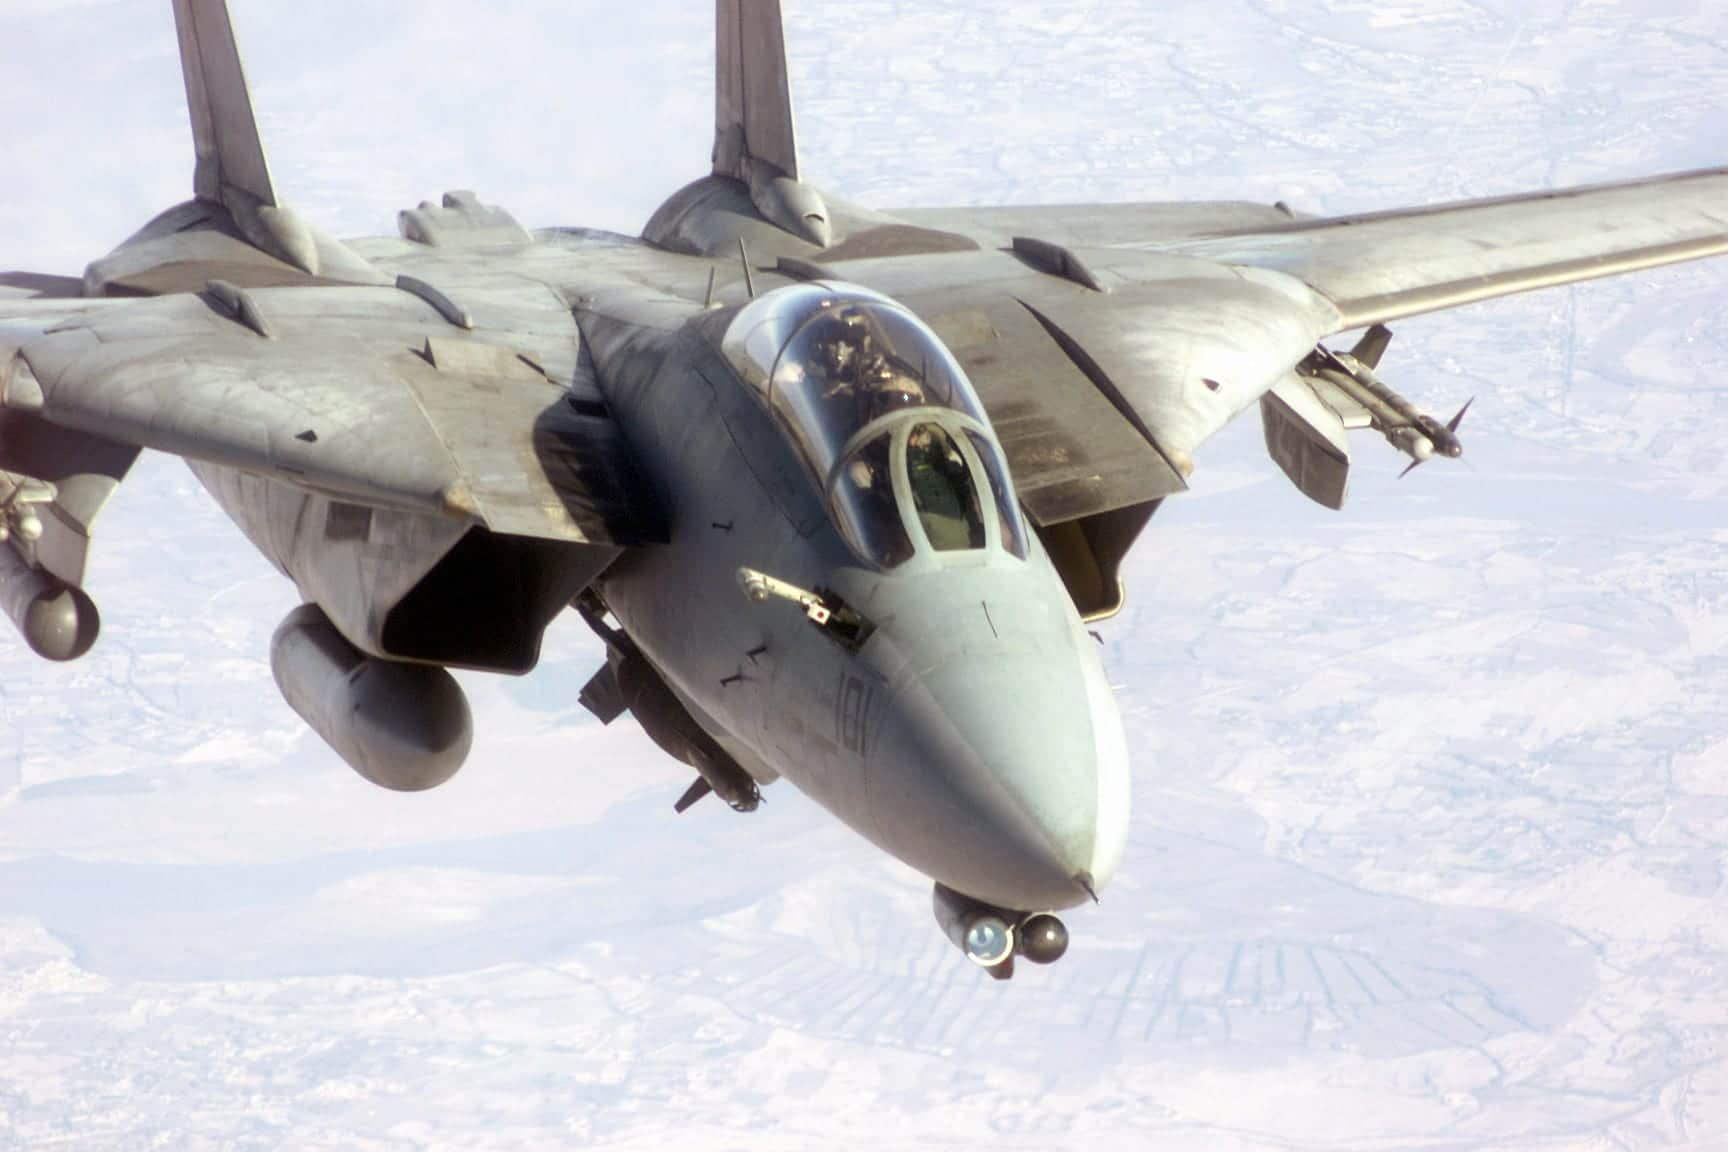 f-14_tomcat_preparing_to_refuel.jpg